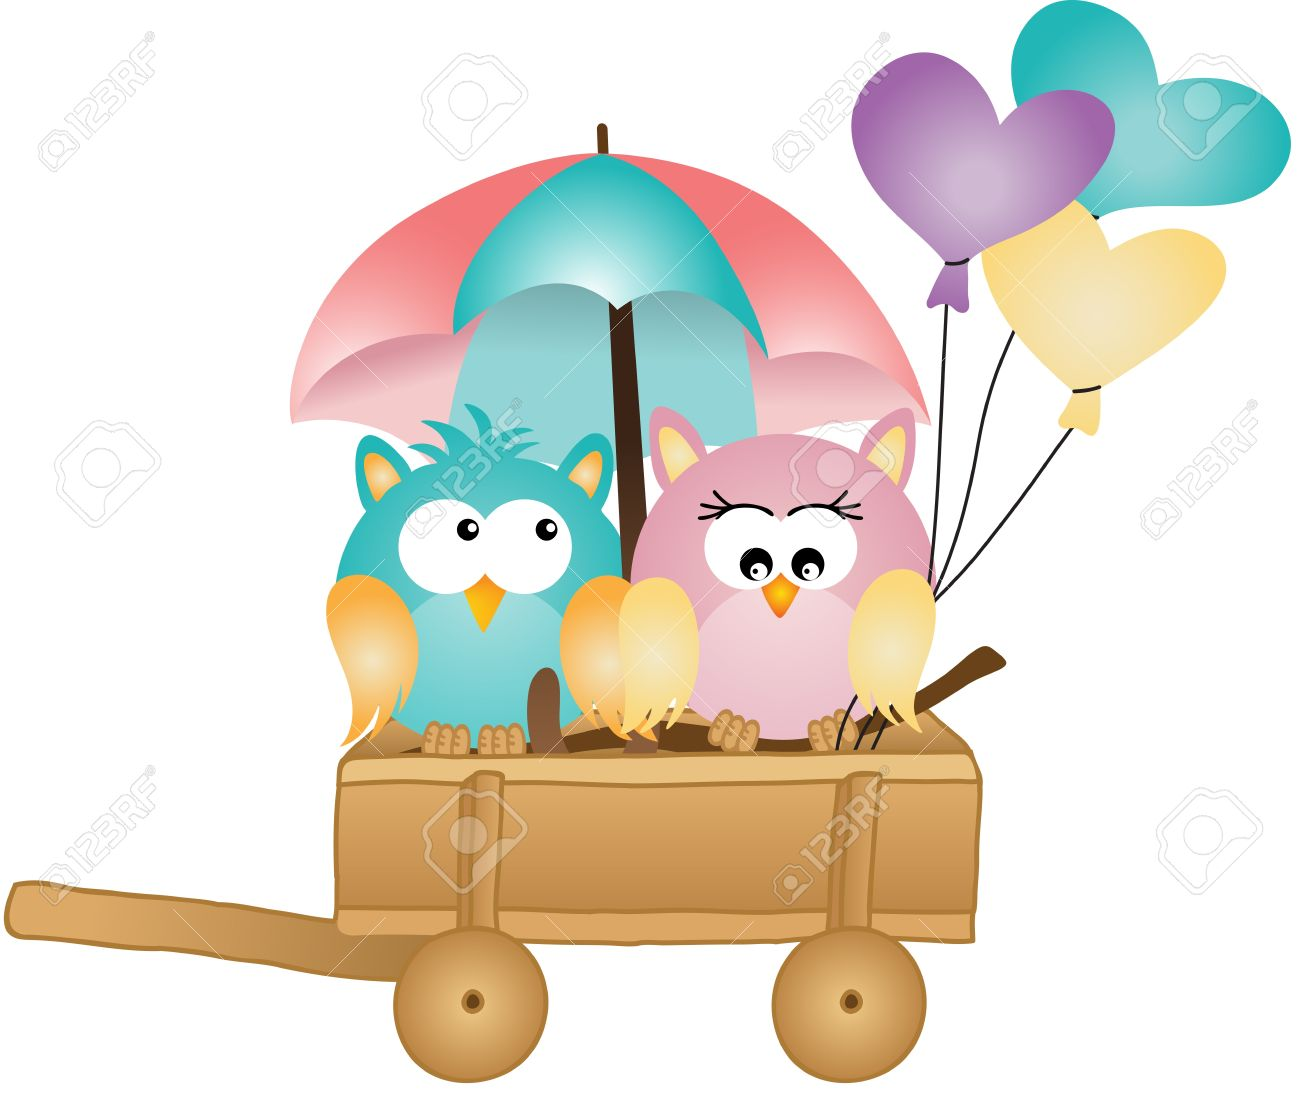 Owl april clipart picture freeuse download Owls In Spring Rain Royalty Free Cliparts, Vectors, And Stock ... picture freeuse download